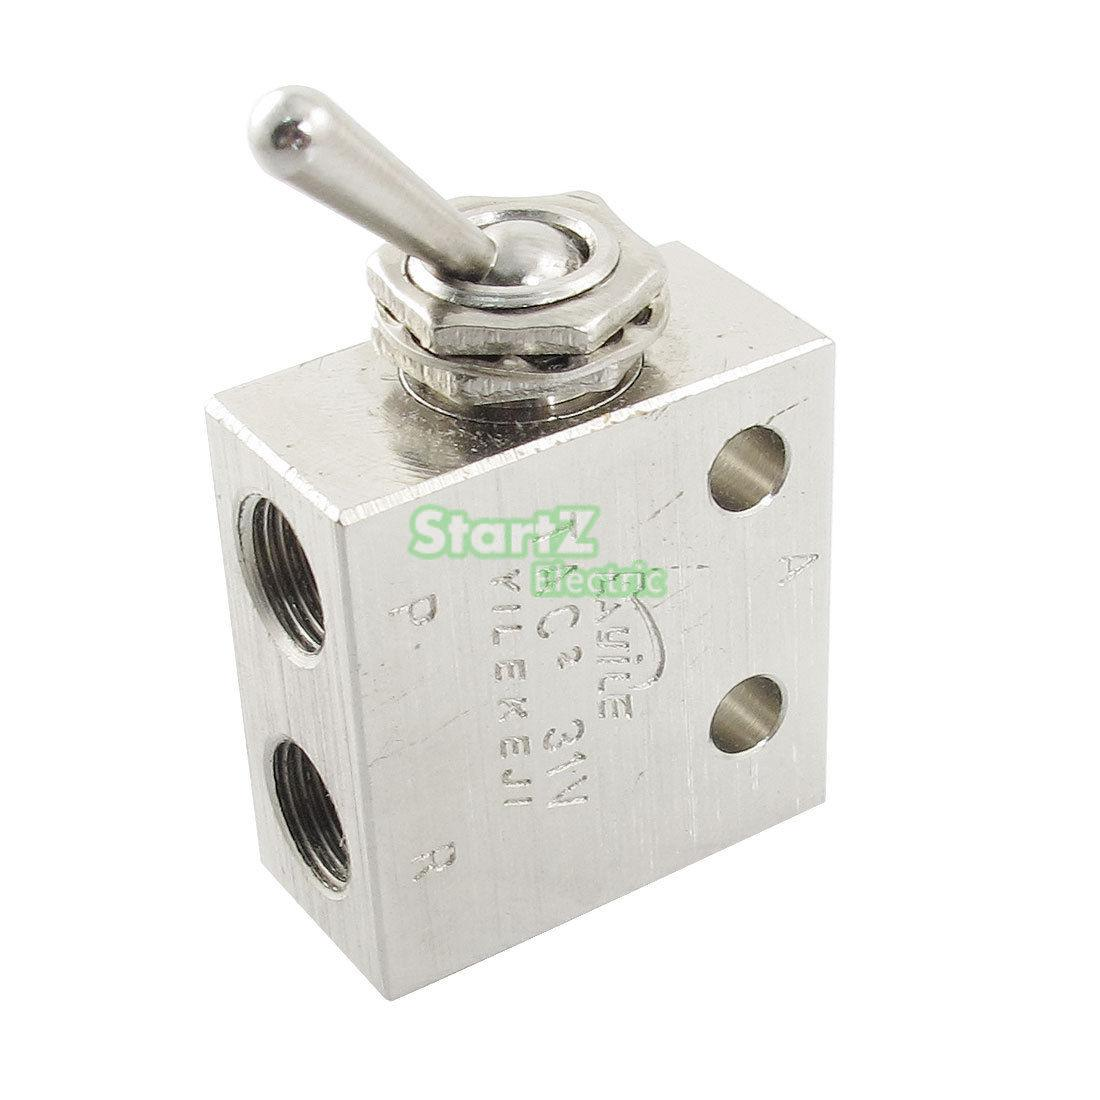 1/8PT Thread 2 Position 3 Way Rectangle Mechanical Air Pneumatic Valve TAC2-31V benetti подвесная люстра benetti modern ponte mod 416 5075 01 c